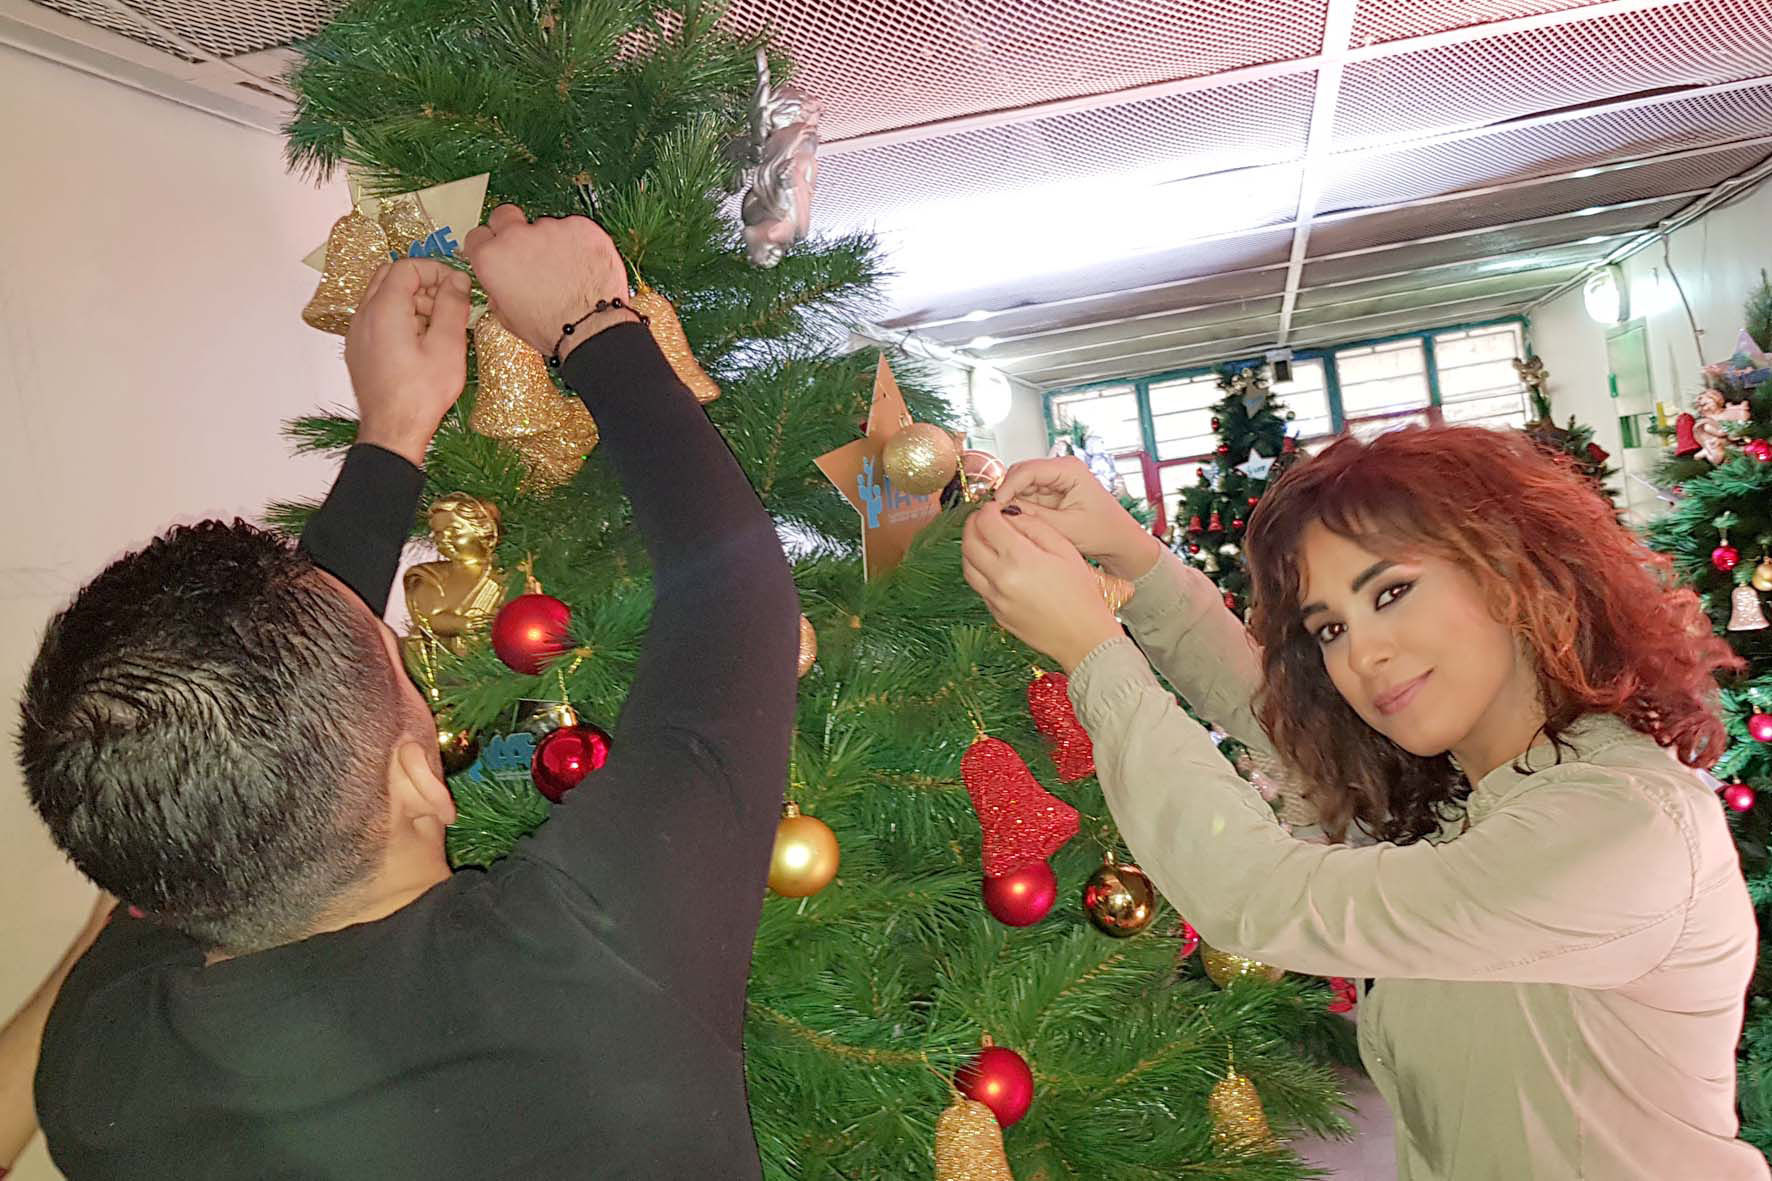 actress andree nacouzi helping in the decoration of the christmas tree.